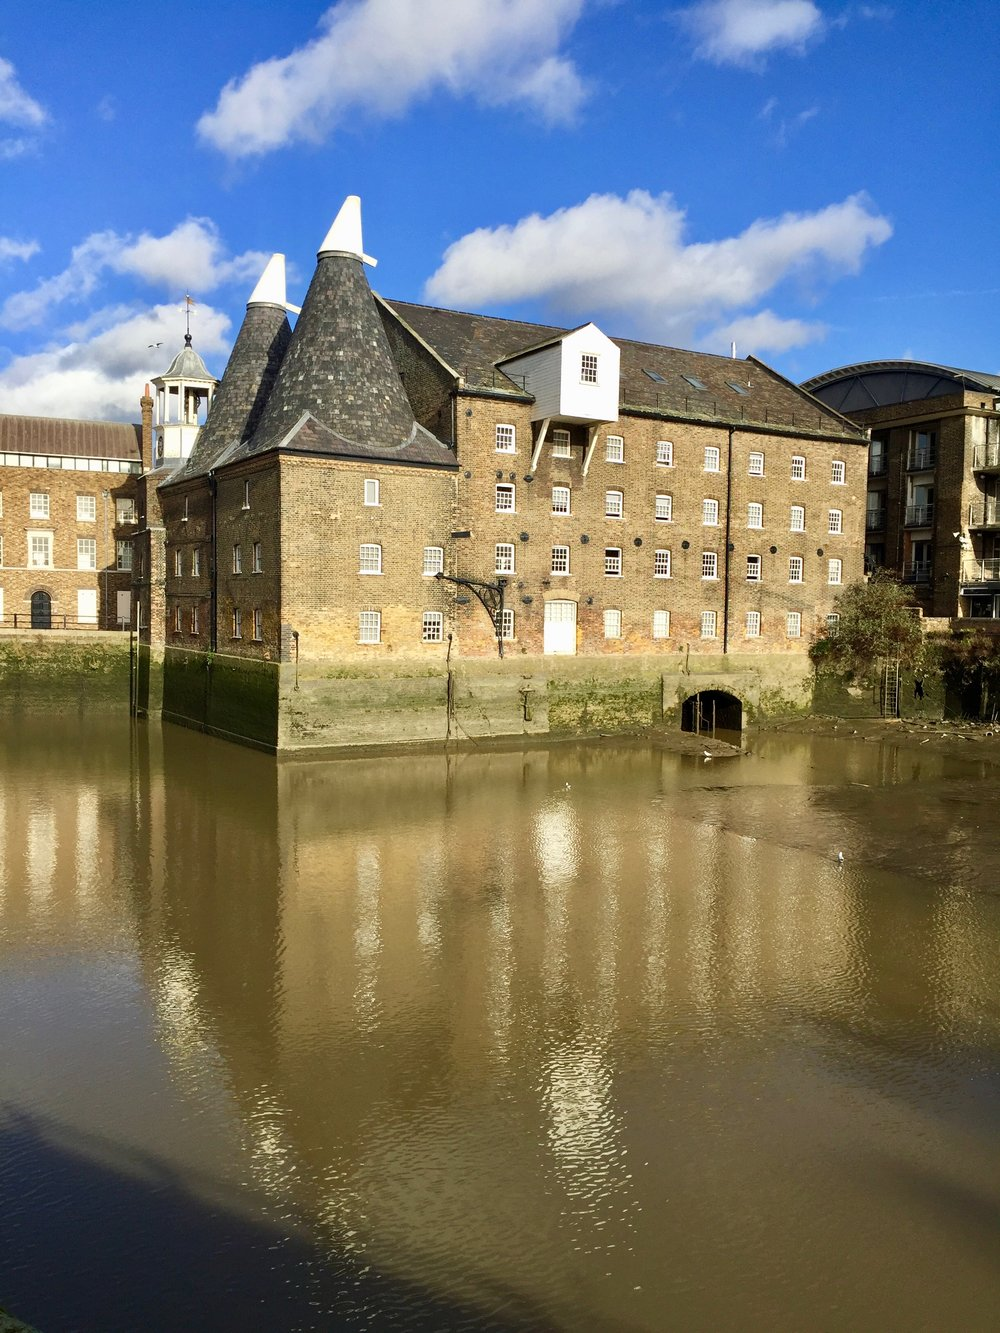 Taken on our  Limehouse to Three Mills jaunt